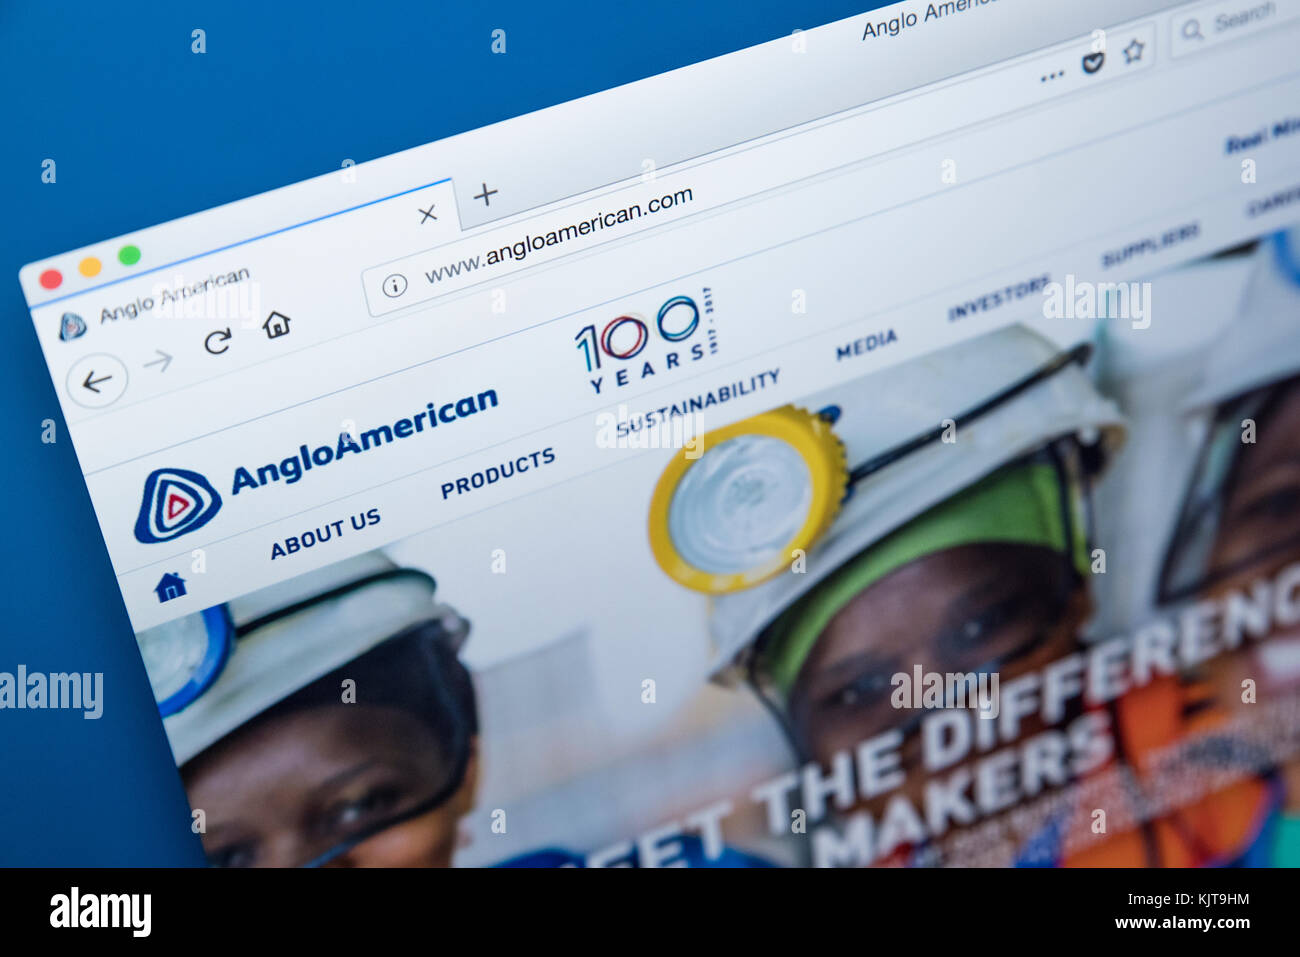 anglo american plc in south africa case study answers View anglo american plc in south africa from buad 301 at csu anglo american plc in south africa - anglo american plc in wesley huber case study anglo.